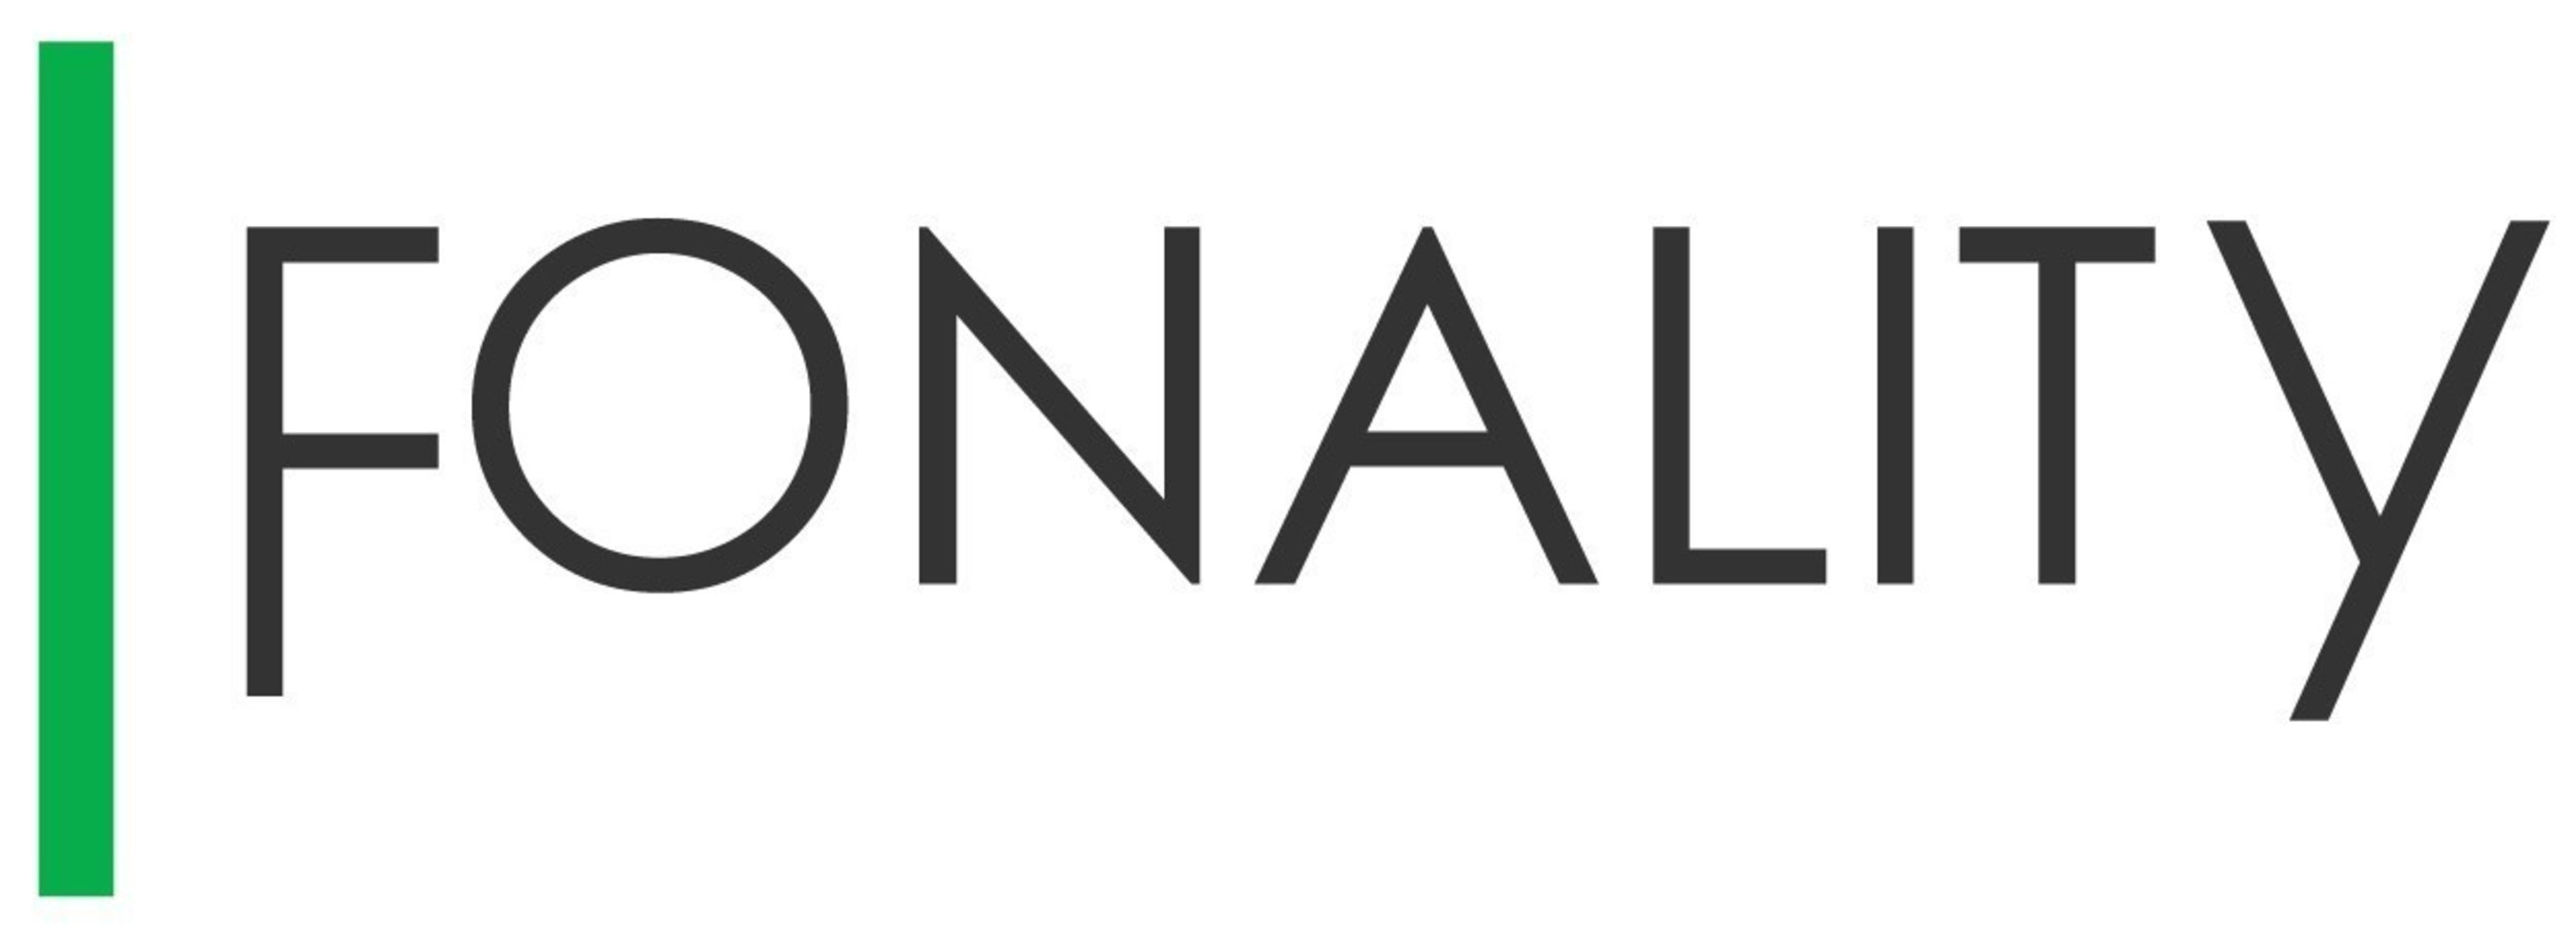 Fonality Integration Strategy Expands Unified Communications Offering with Unique Approach to Integrations